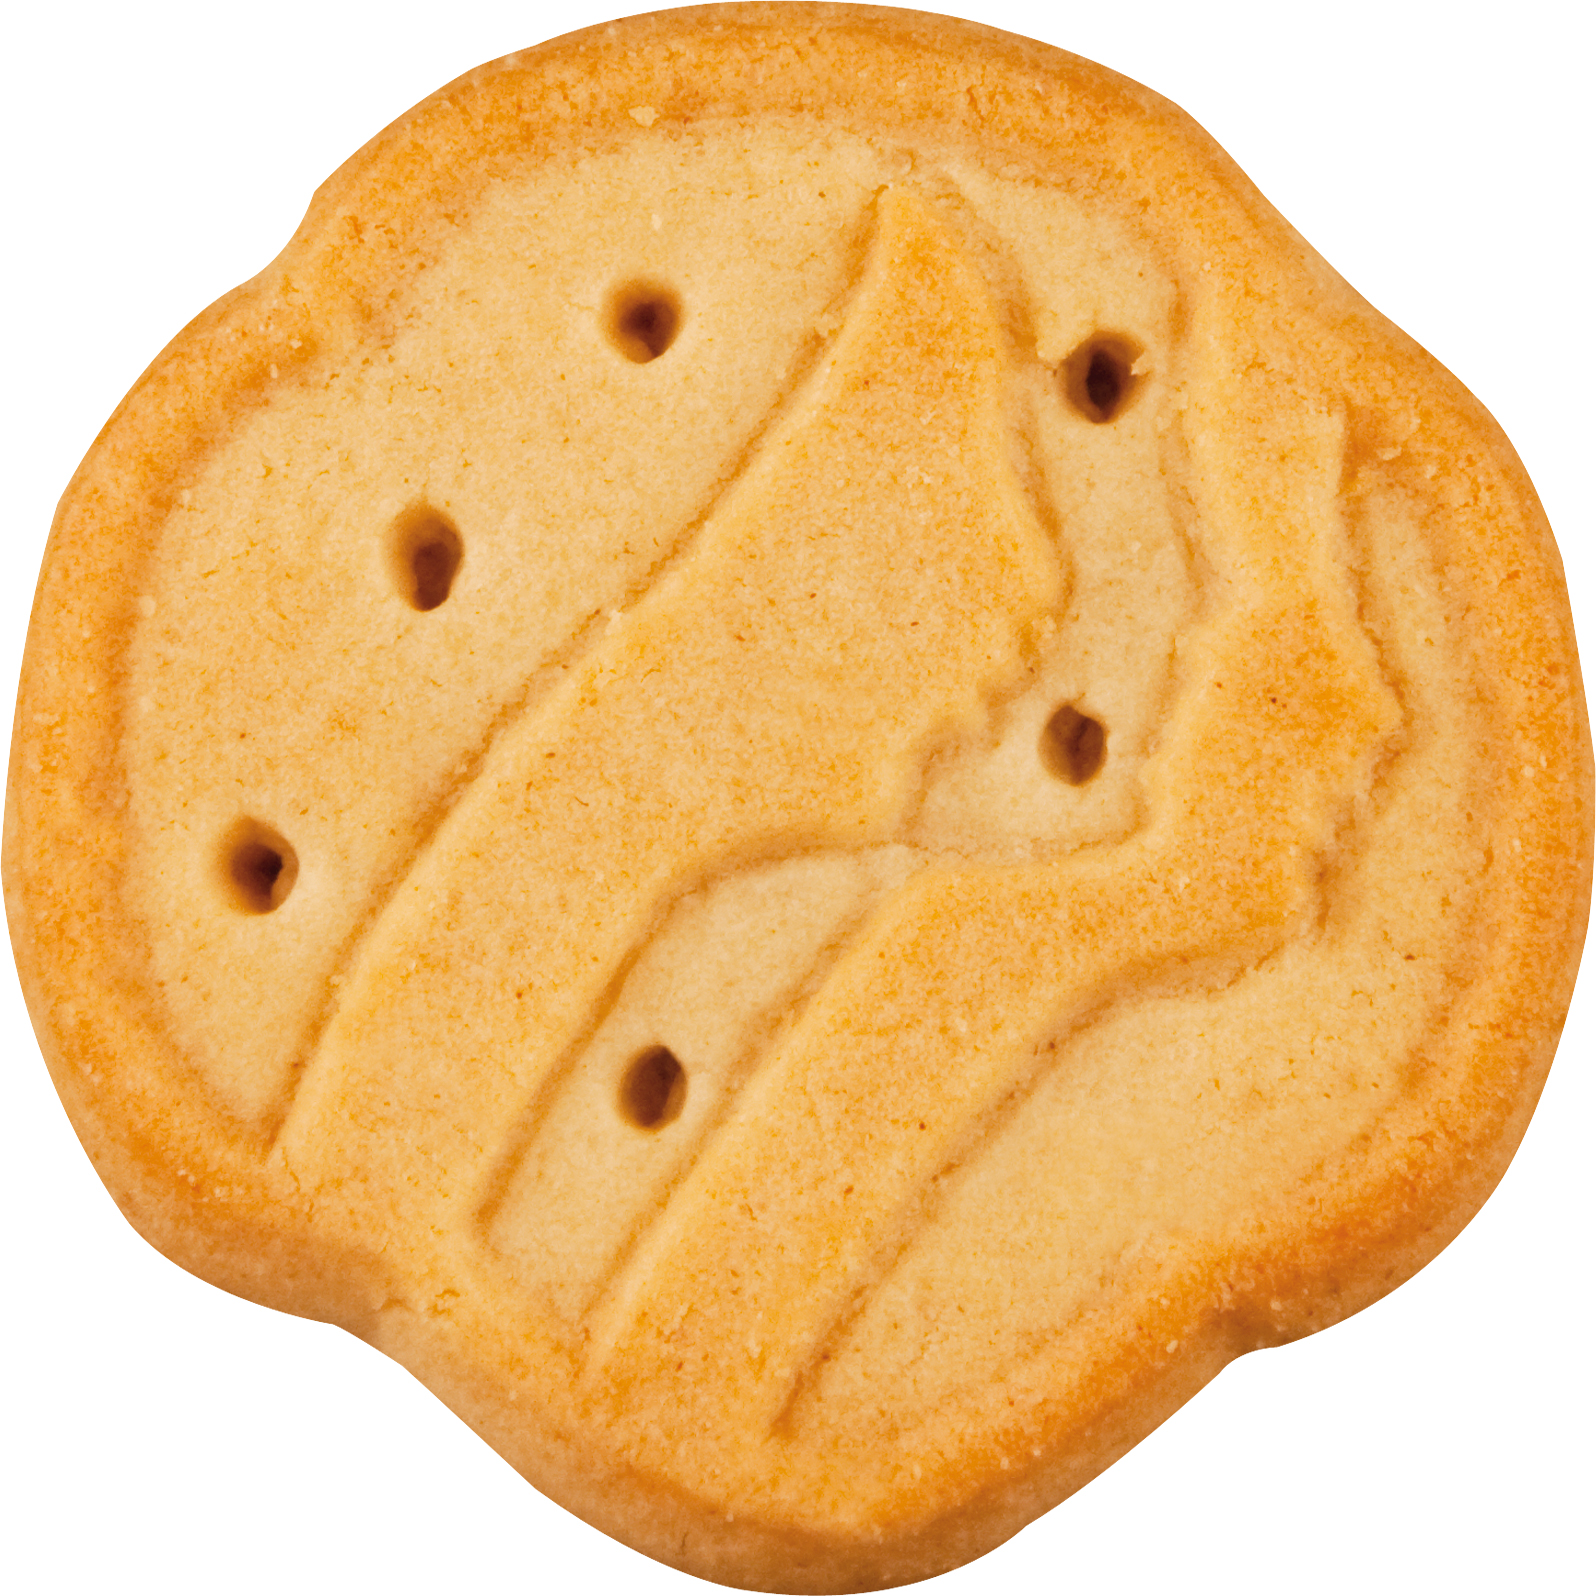 edeneatseverything.comQuiz: What Kind Of Girl Scout Cookie Are YOU?